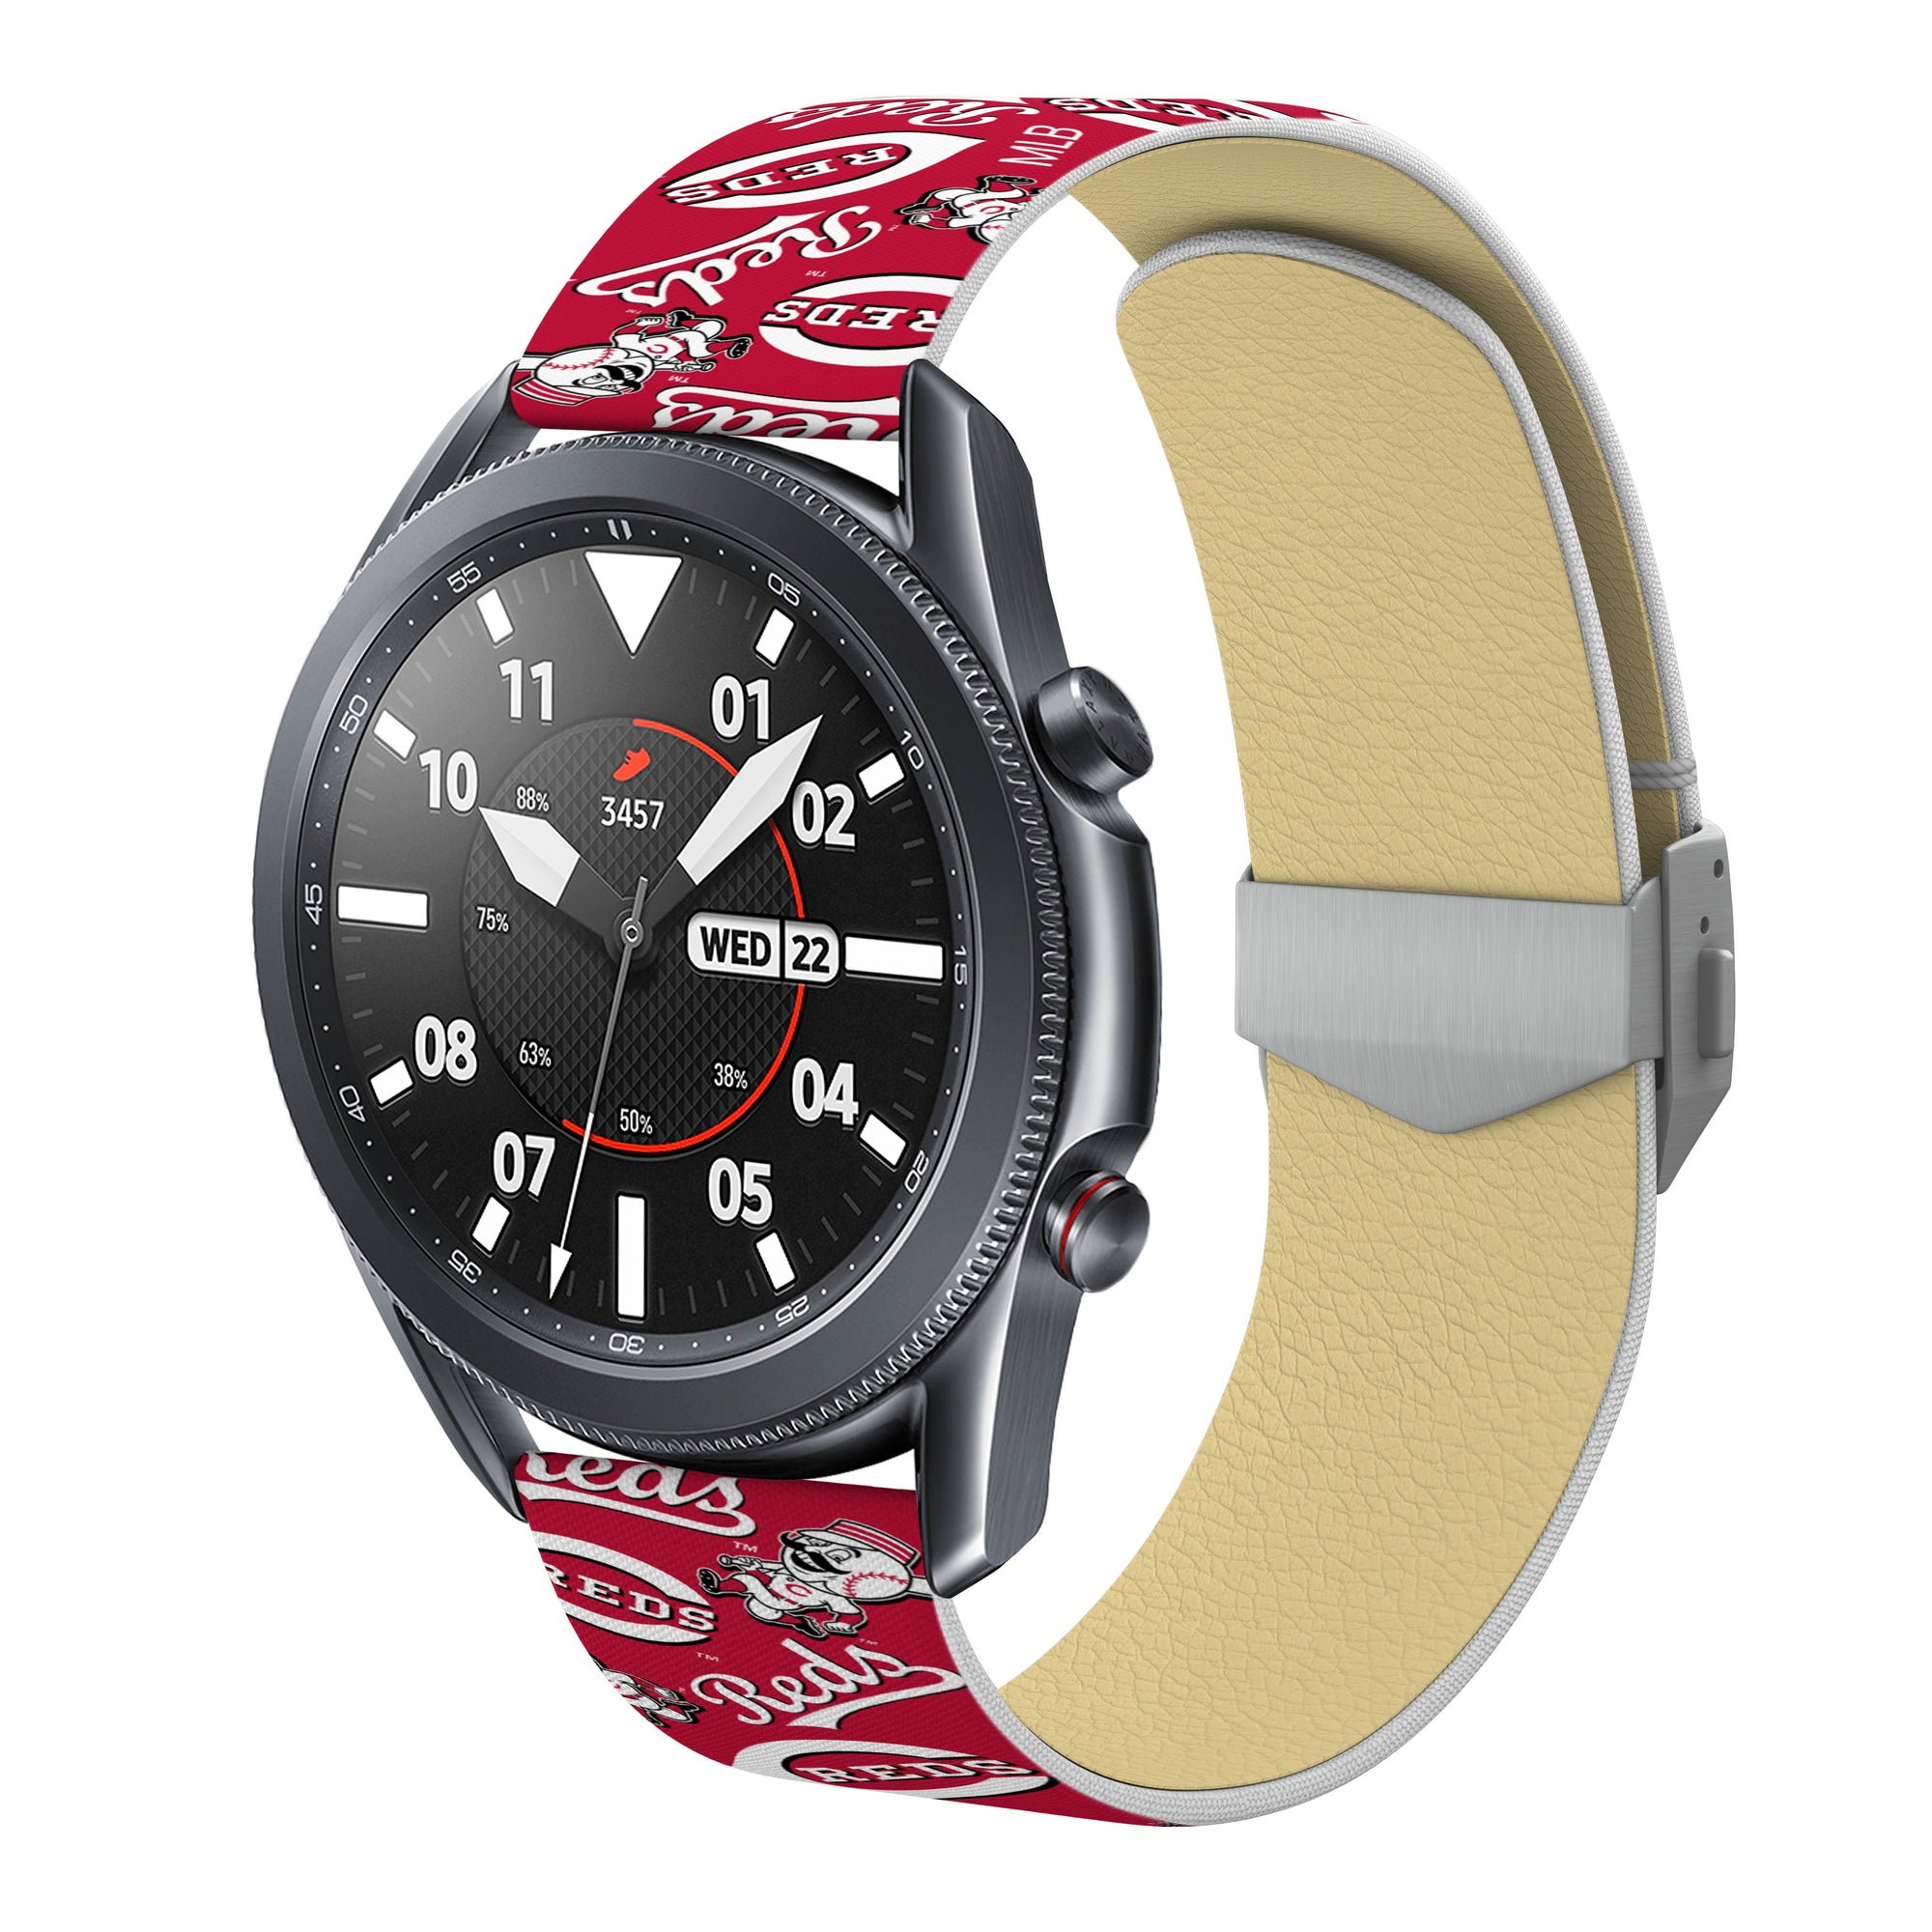 Cincinnati Reds Full Print Quick Change Watch Band With Engraved Buckle - AffinityBands